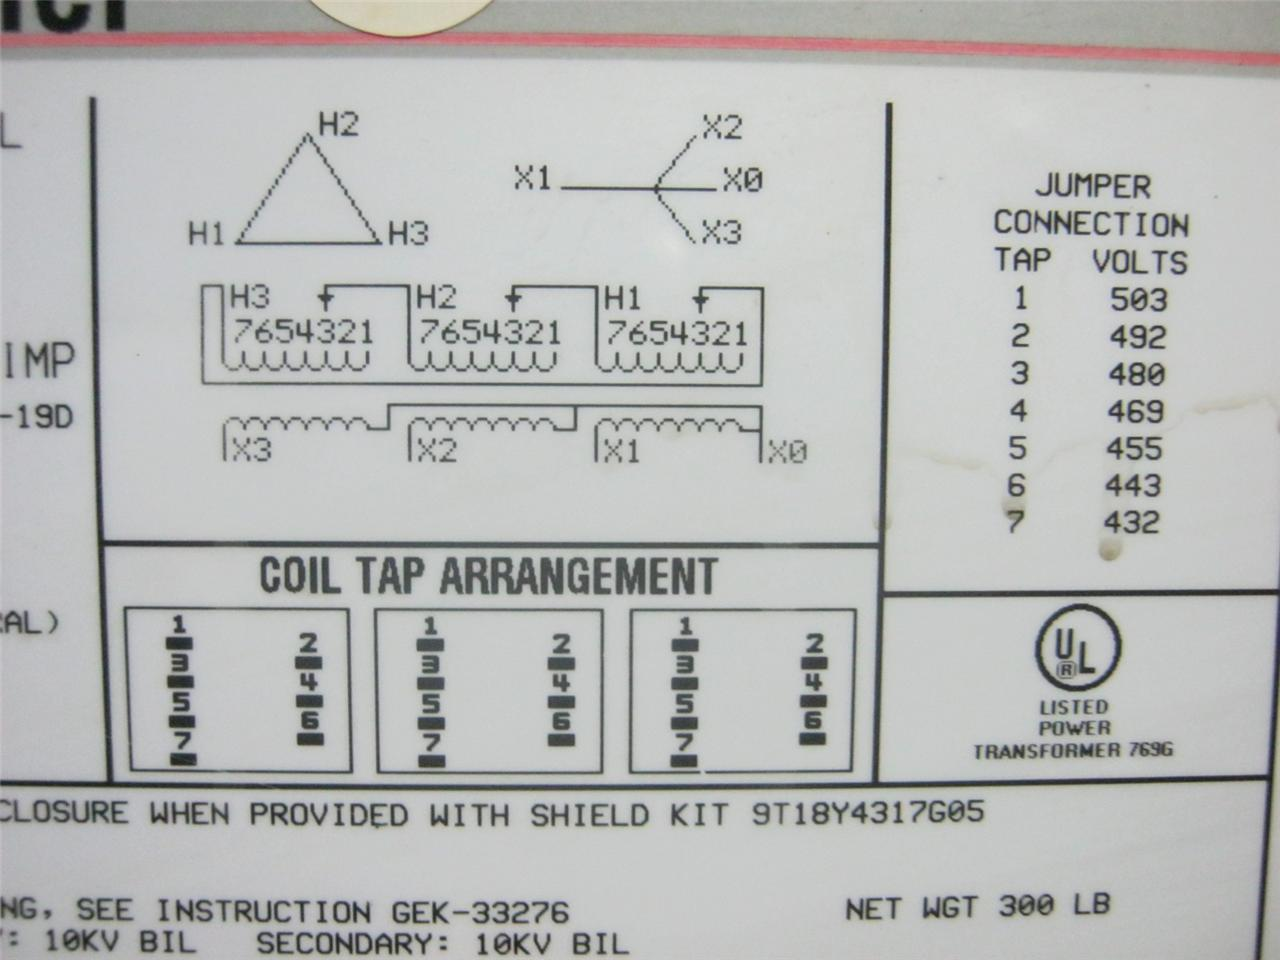 Wiring Diagram For Utilitech Dusk To Dawn Light Custom Project 480 Volt Photocell 480v Relay Electrical And Electronic